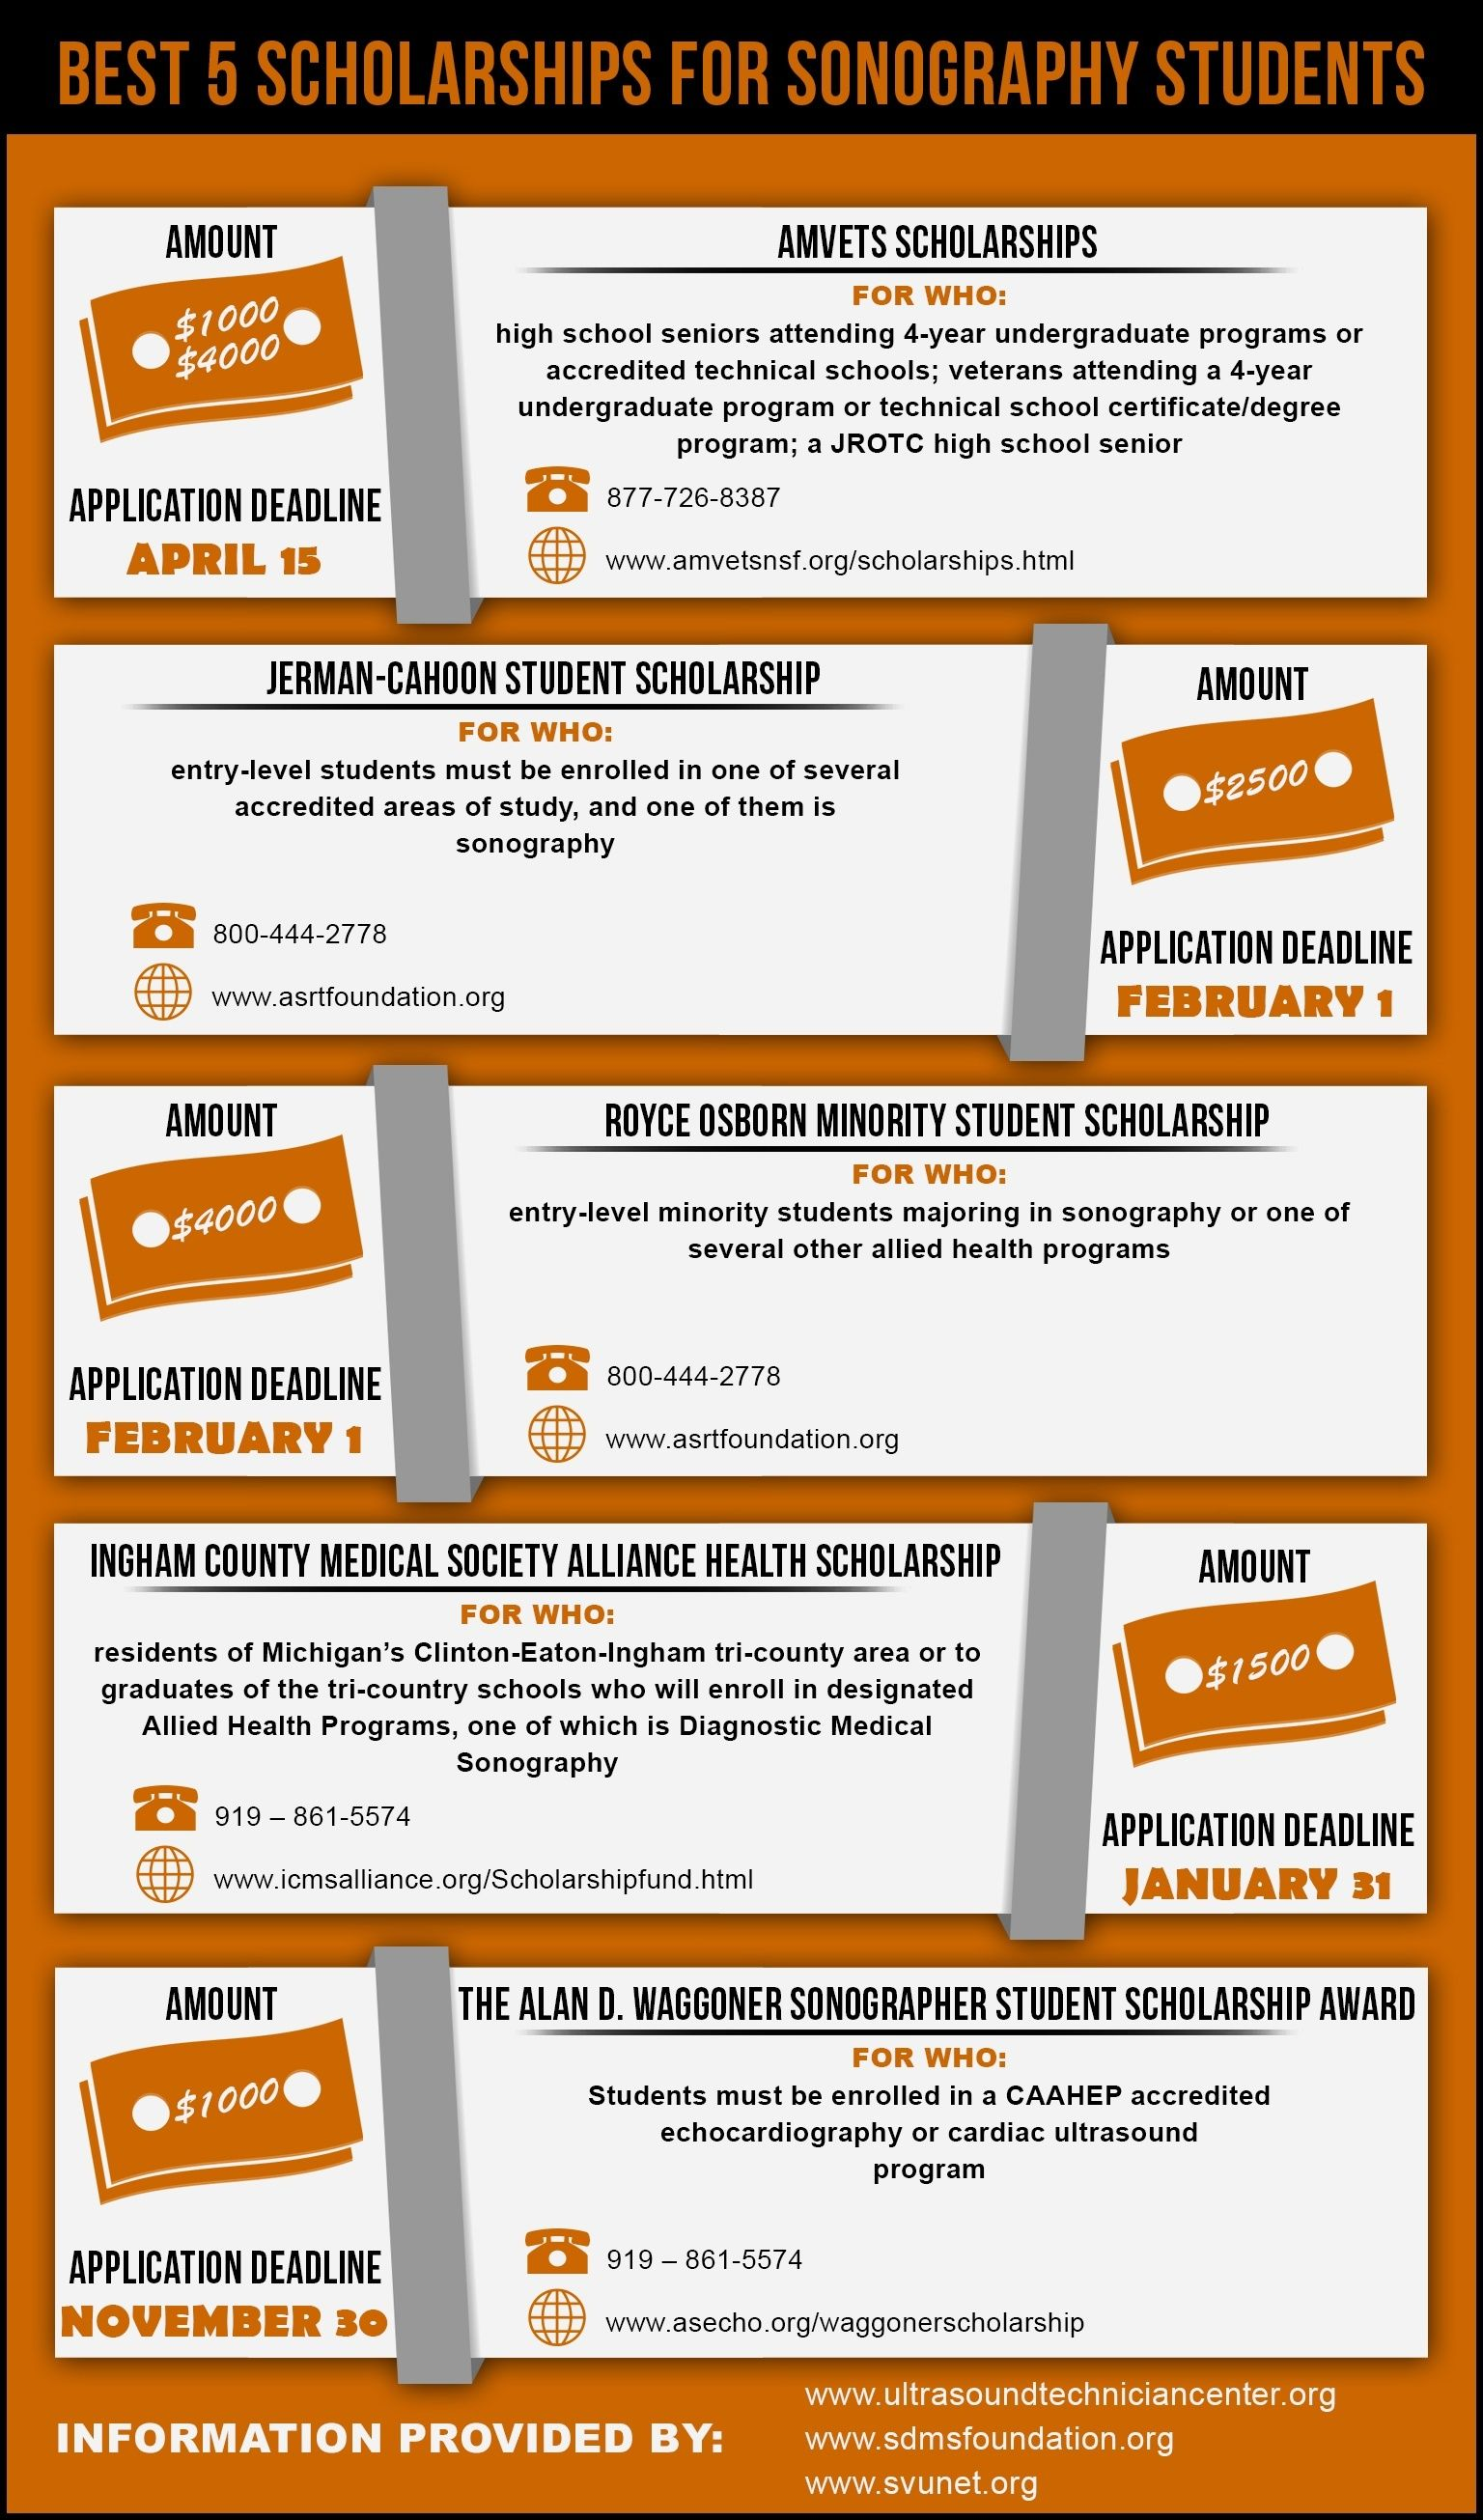 Best 5 scholarships for sonography students infographic